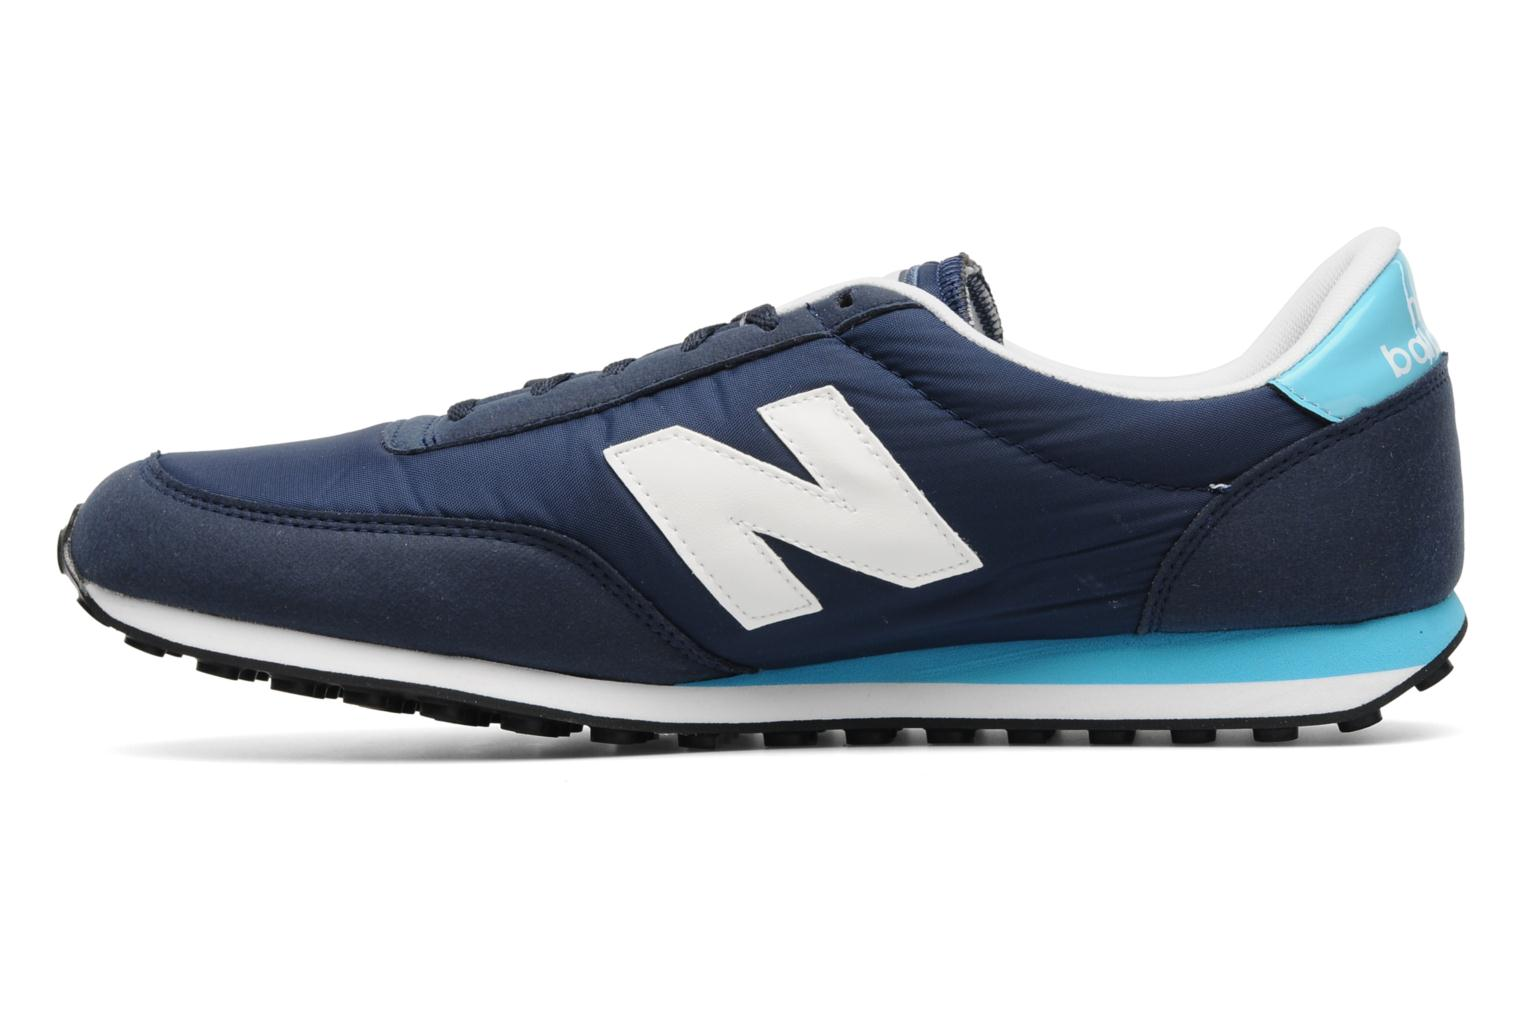 new balance u410 trainers in blue at 135482. Black Bedroom Furniture Sets. Home Design Ideas